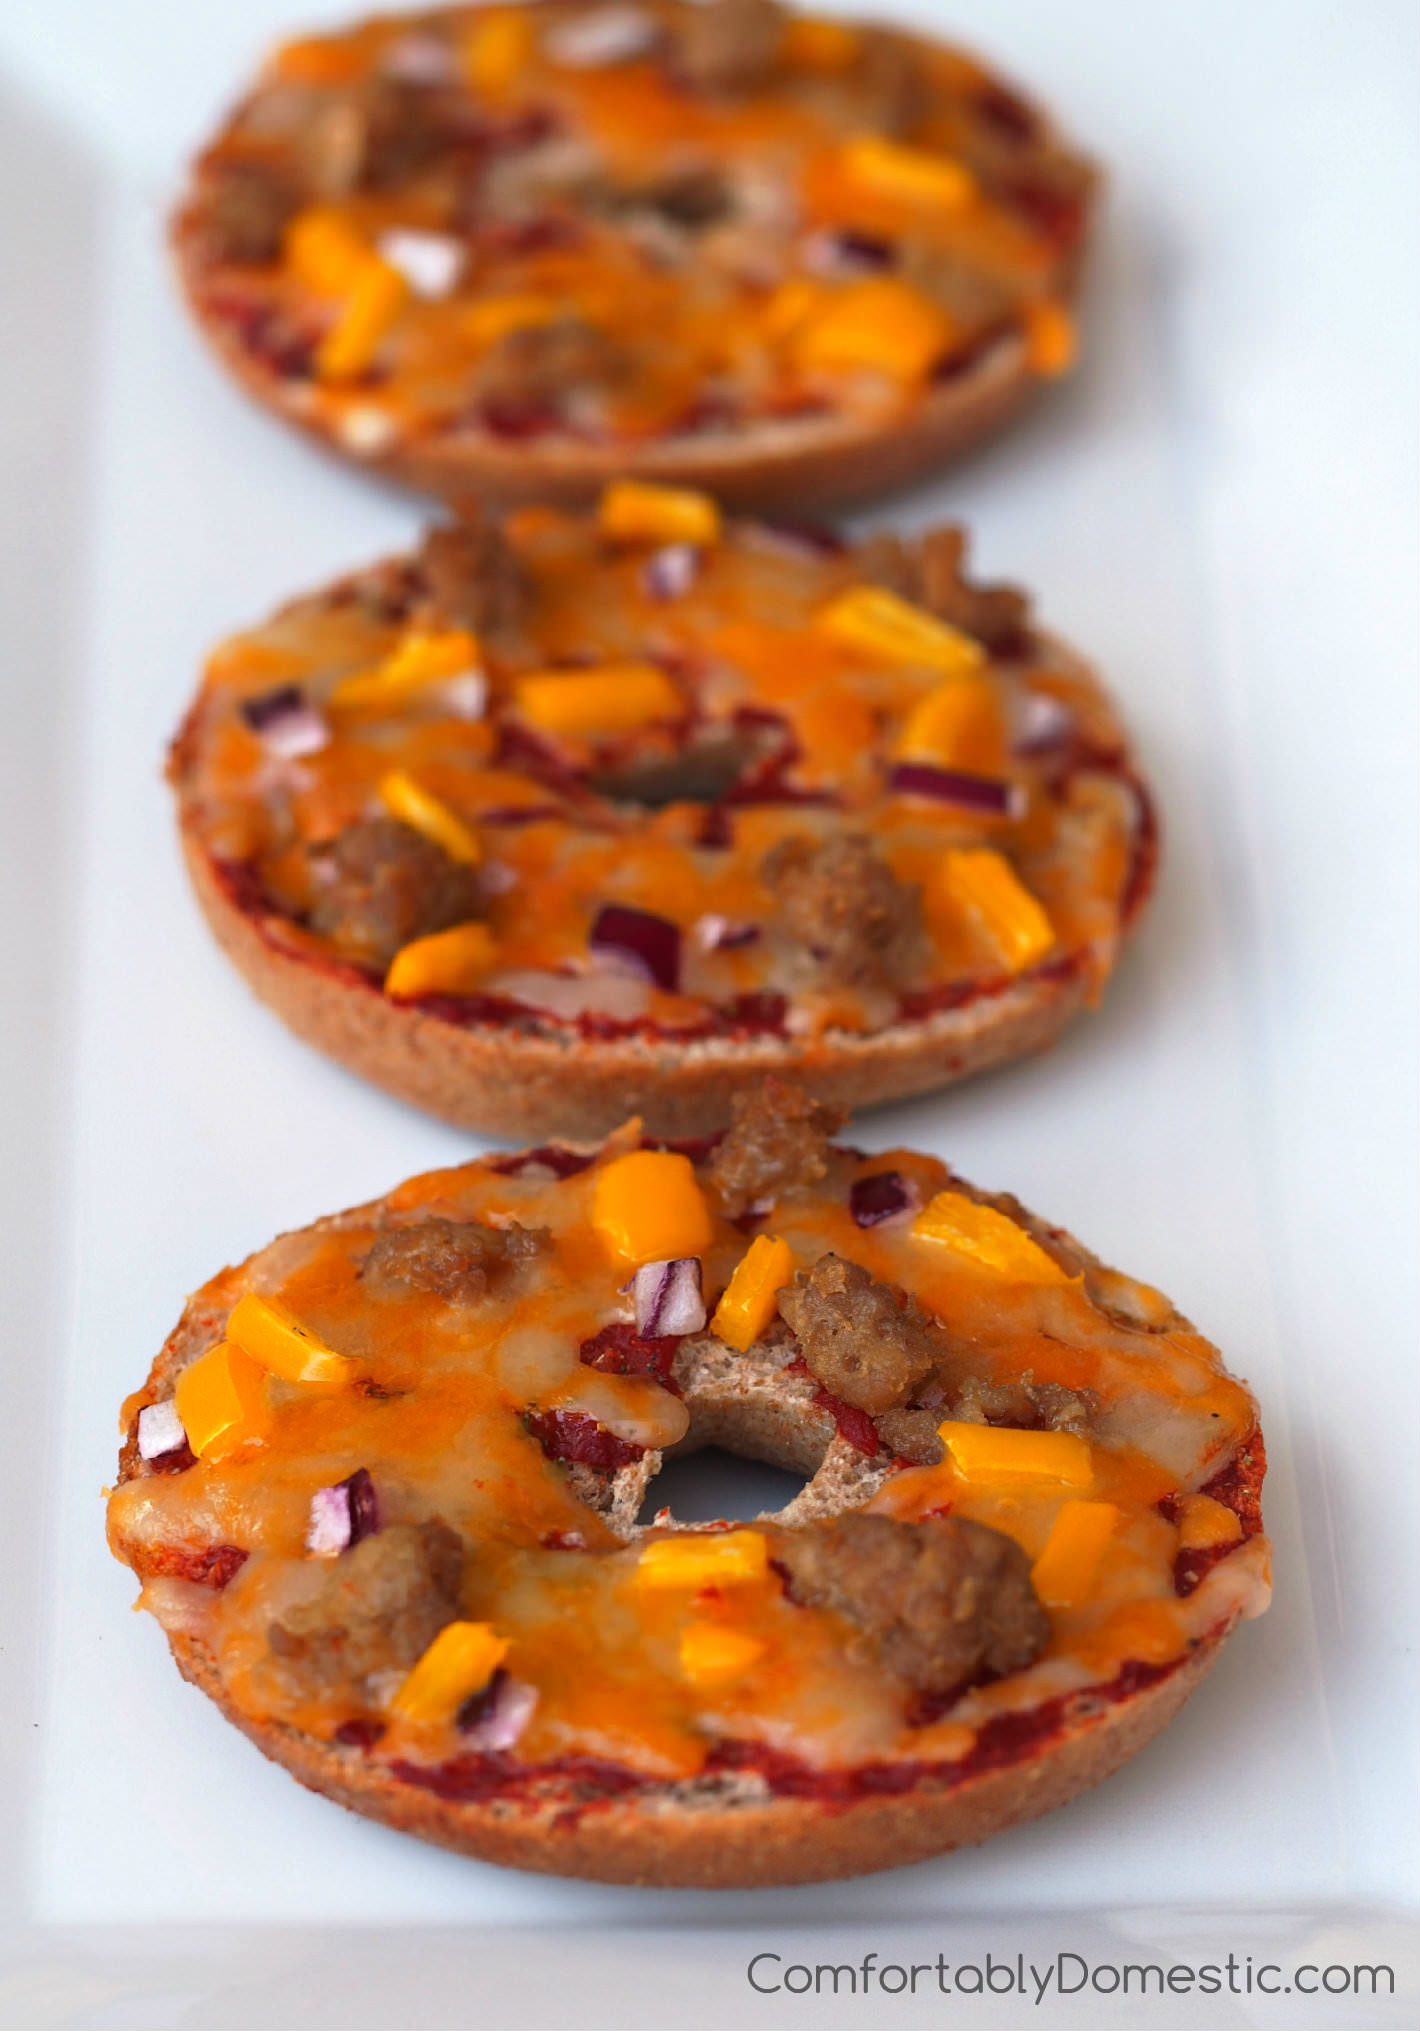 Copy Cat Bagel Bites - Whole grain bagels topped with wholesome toppings like cheddar-jack cheese, lean turkey sausage, and a mix of vegetables for a fun and balanced lunch. Bagel Bites may also be assembled ahead and frozen for a quick after school snack. | ComfortablyDomestic.com